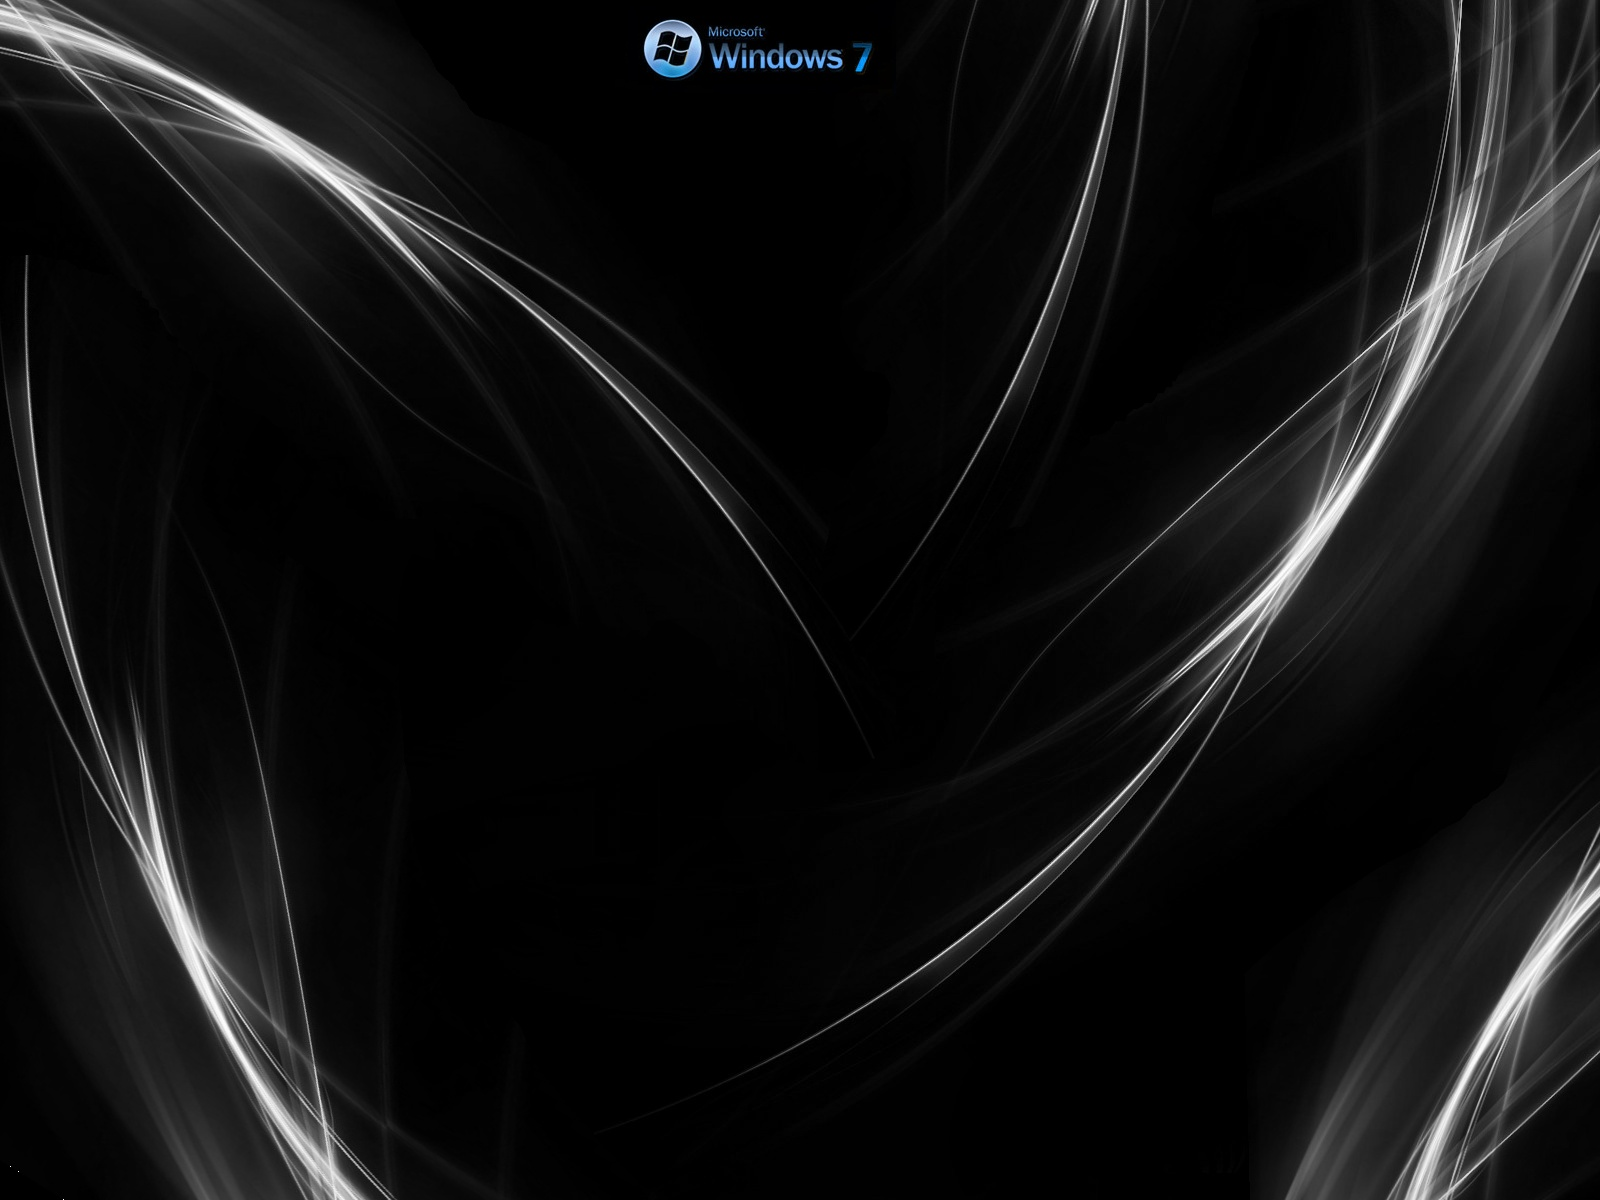 pd wallpaper: windows 7 3d